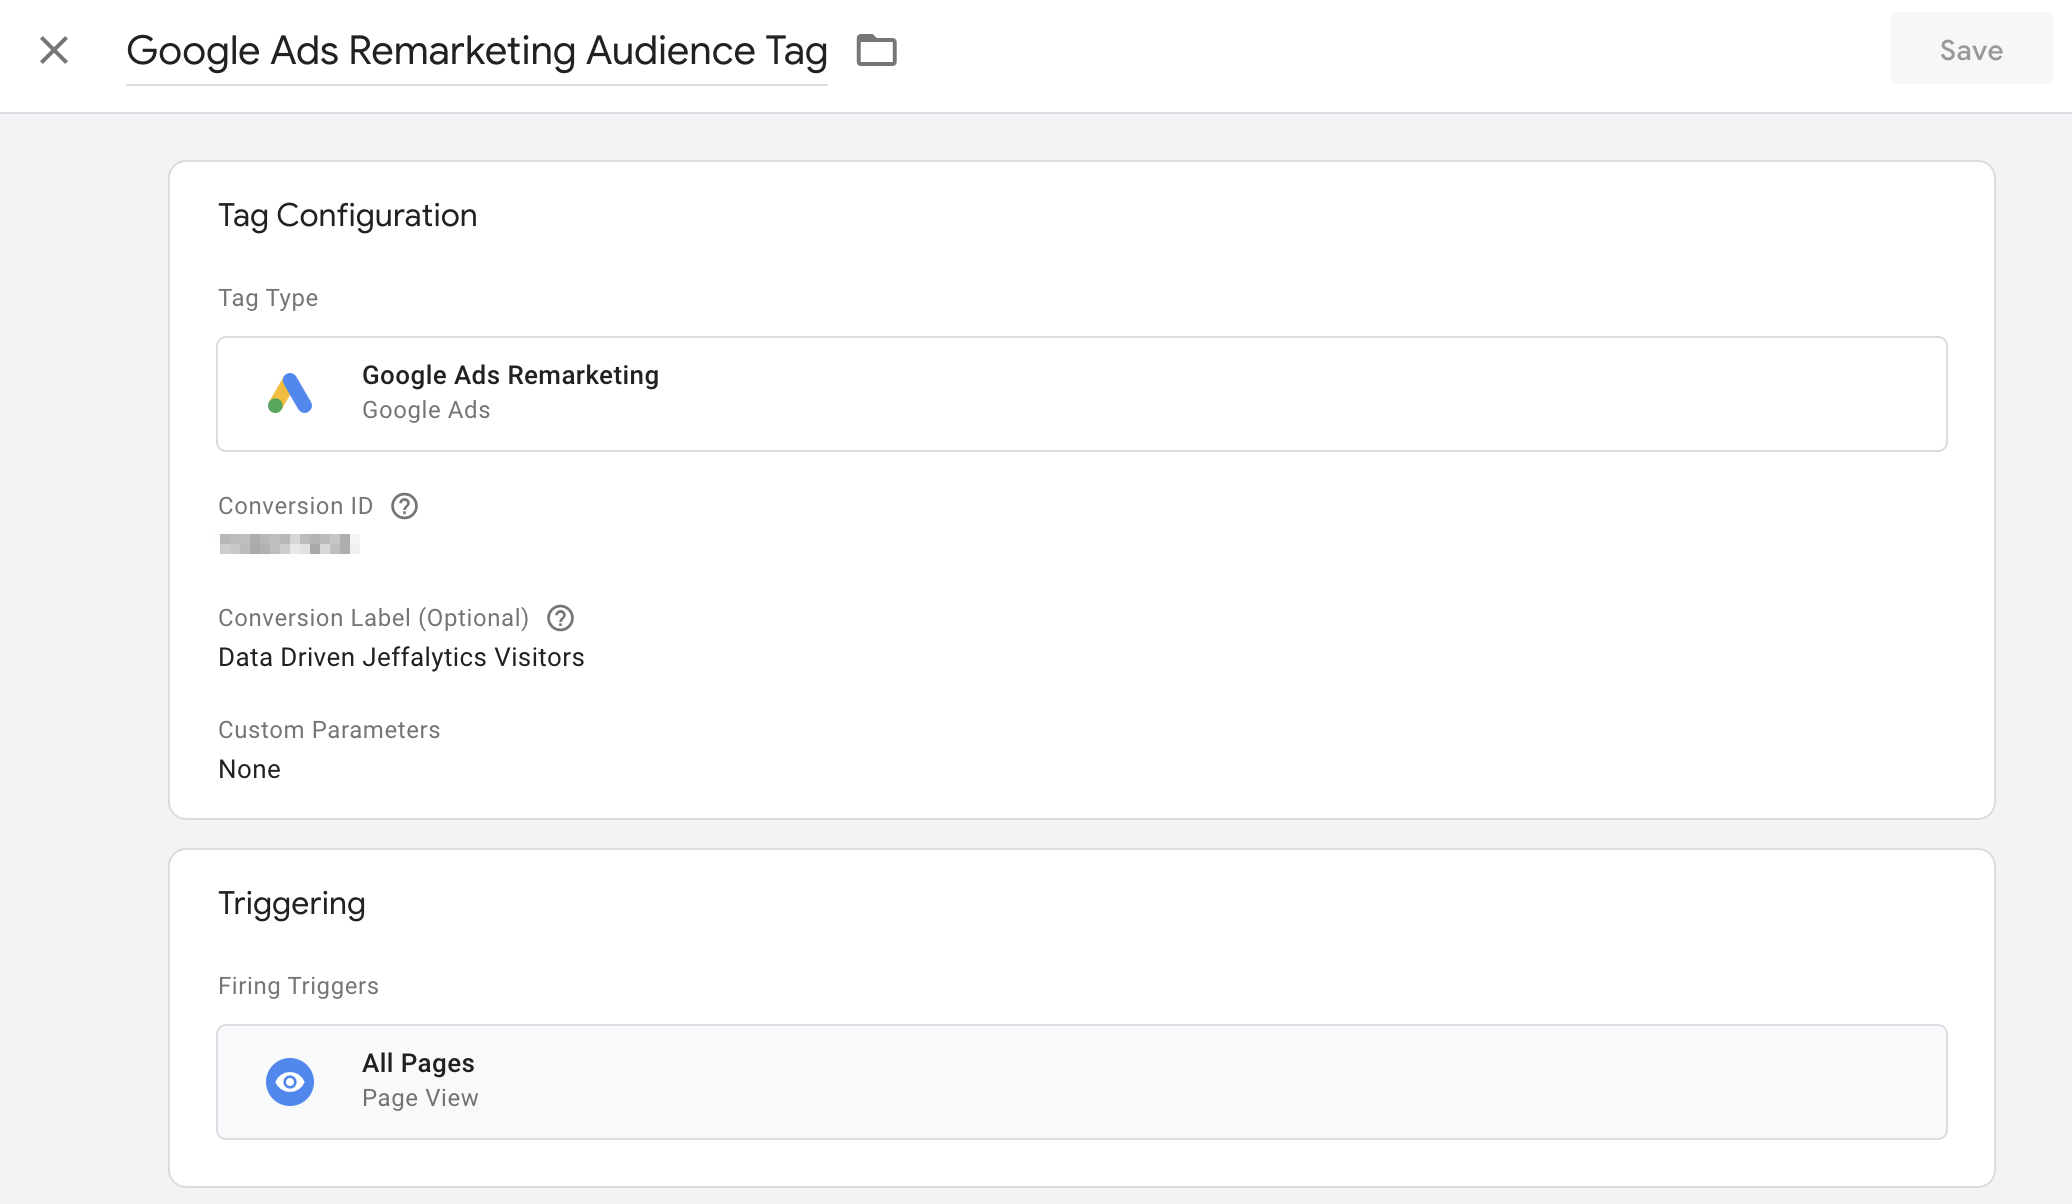 Google Ads Remarketing in Google Tag Manager